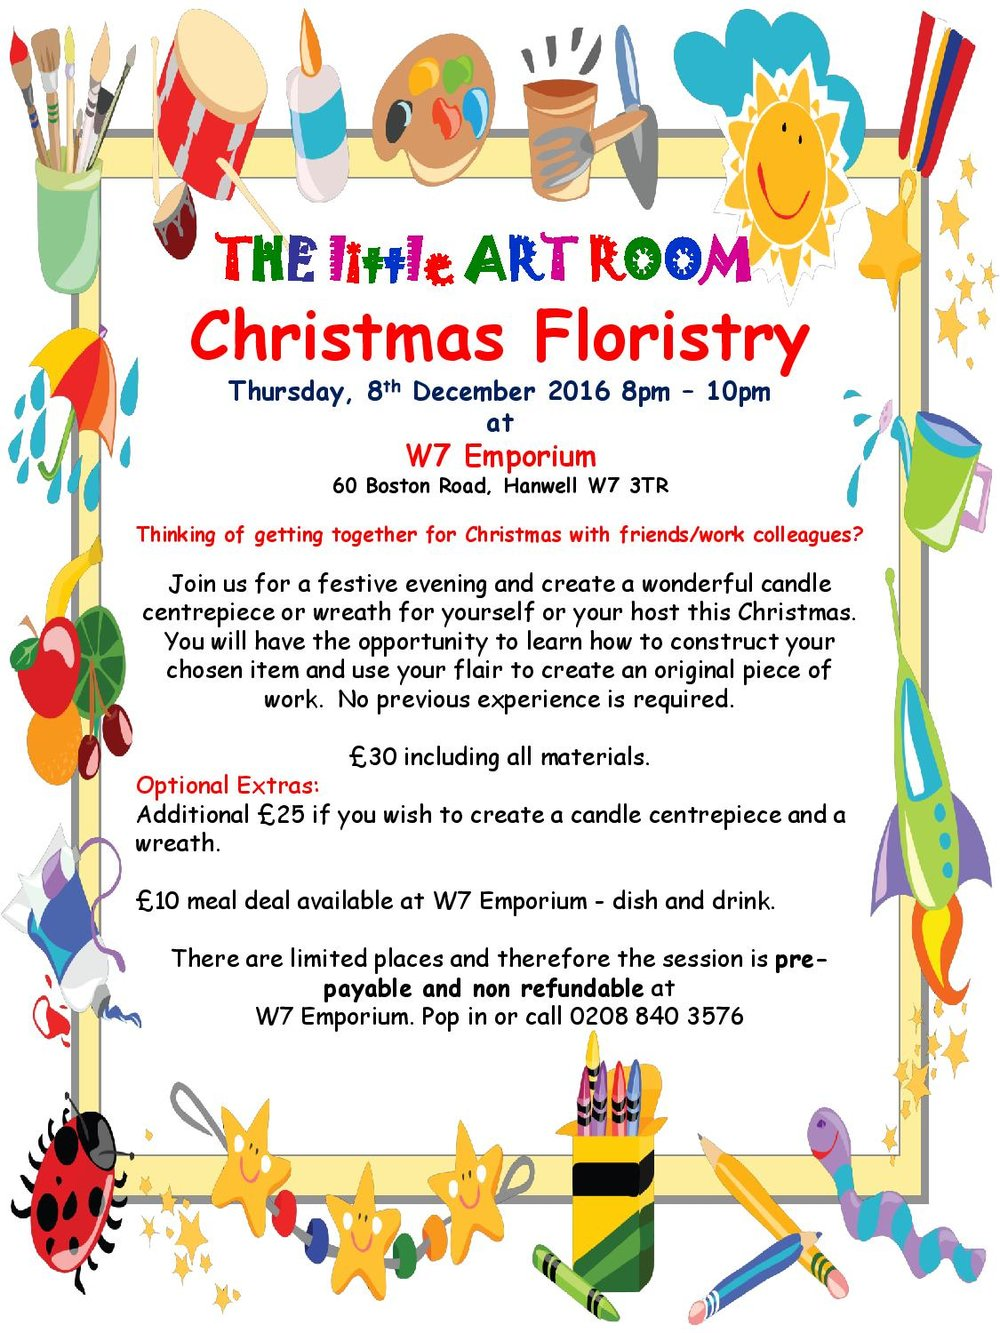 The little art room Christmas Floristry. Thursday, 8th December, 8pm - 10pm at W7 Emporium